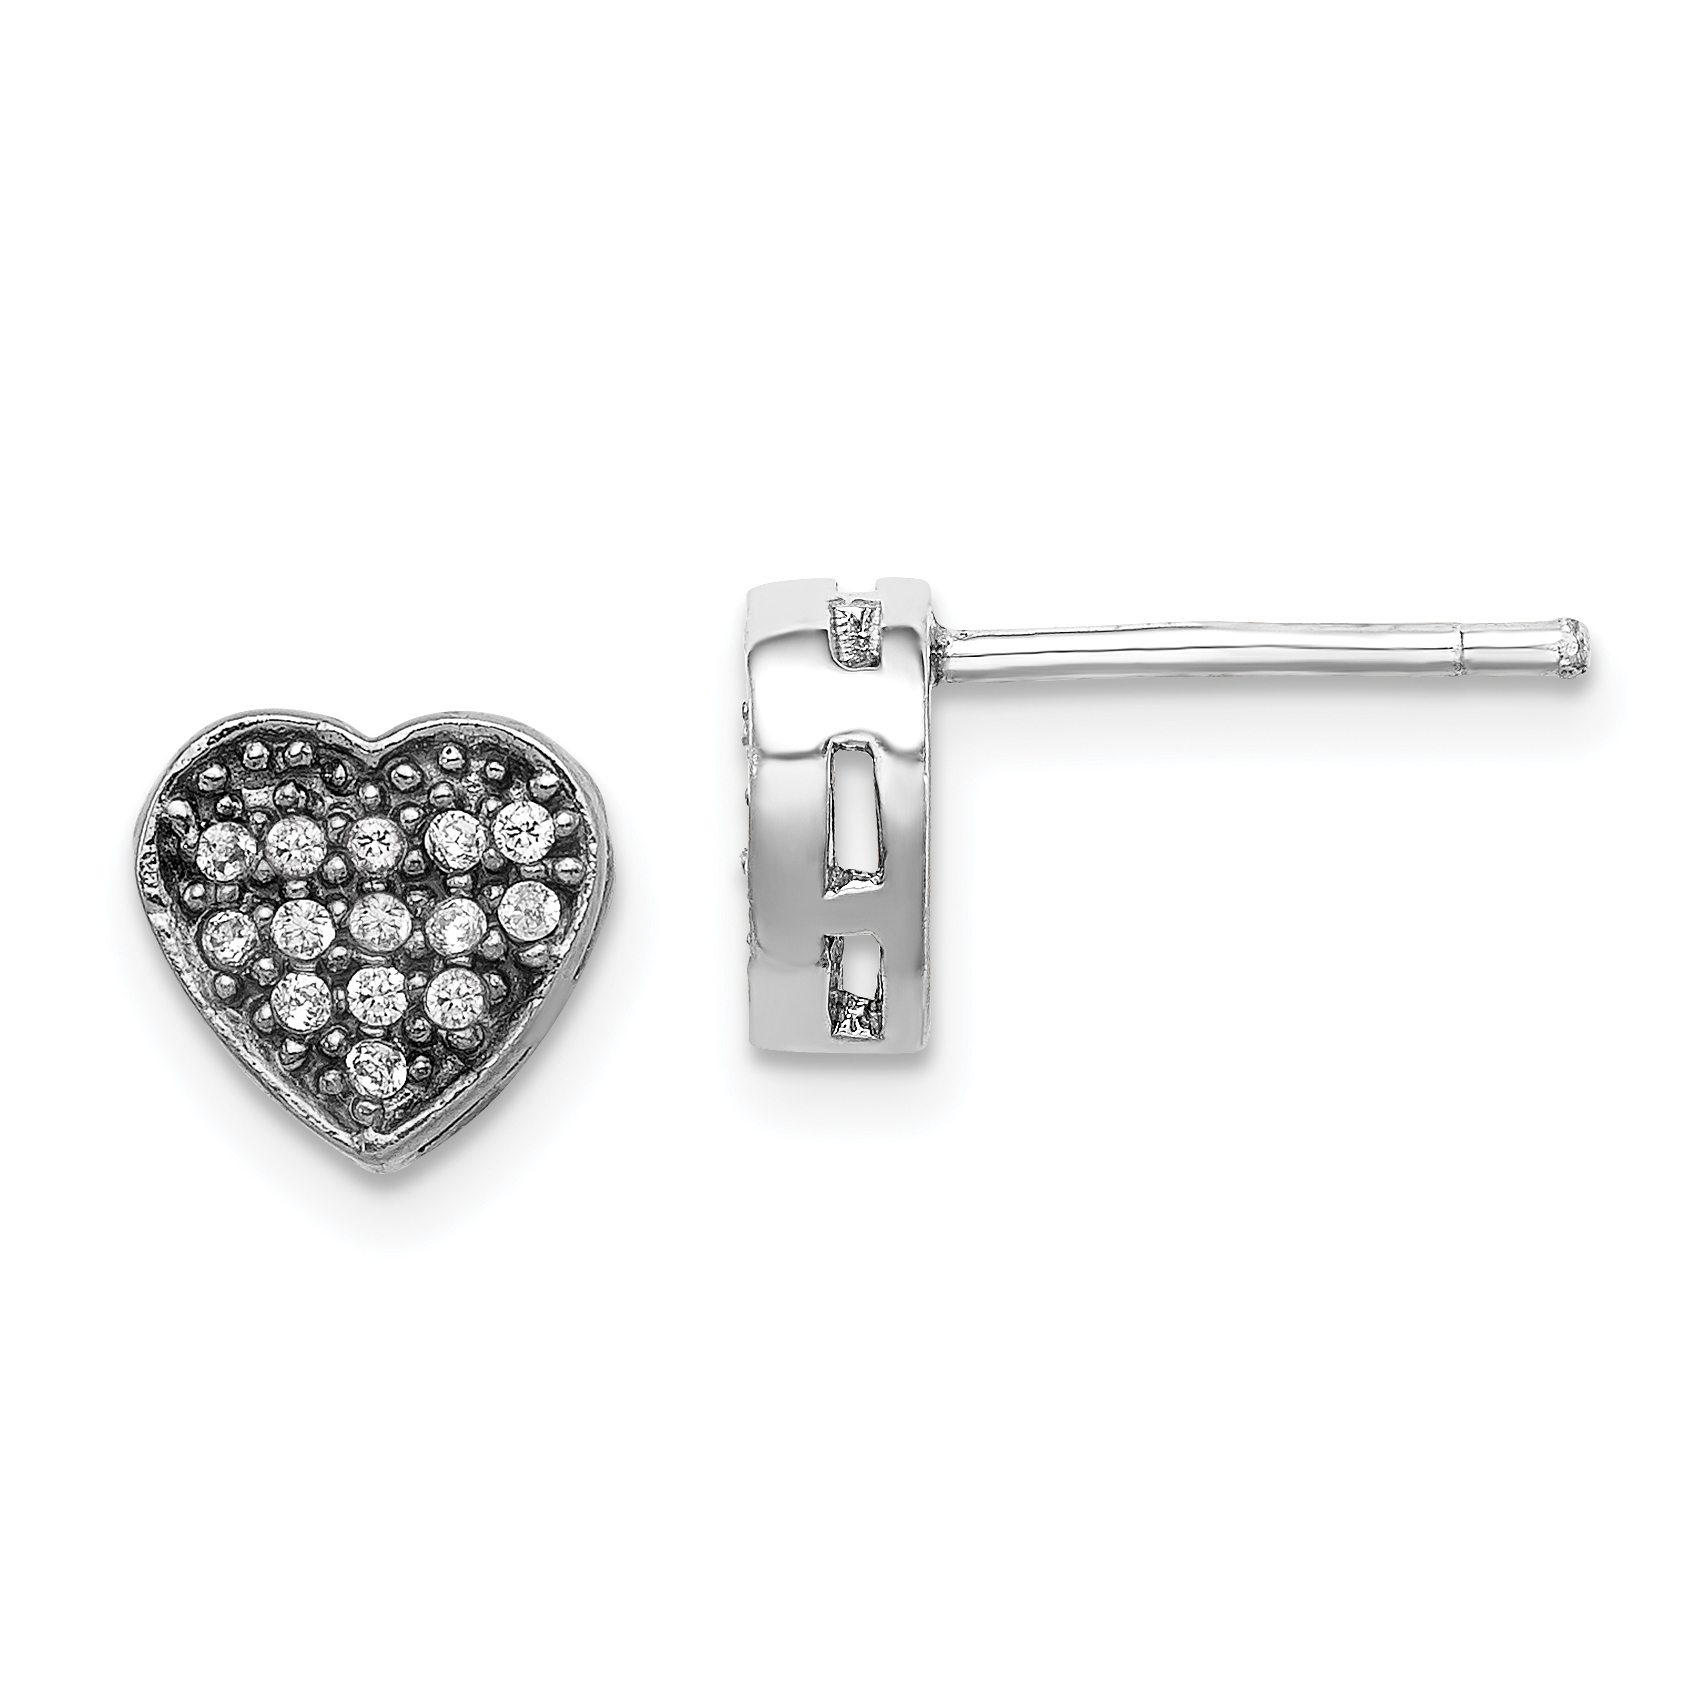 925 Sterling Silver Cubic Zirconia Cz Heart Post Stud Earrings Love Fine Jewelry Gifts For Women For Her - image 4 of 4